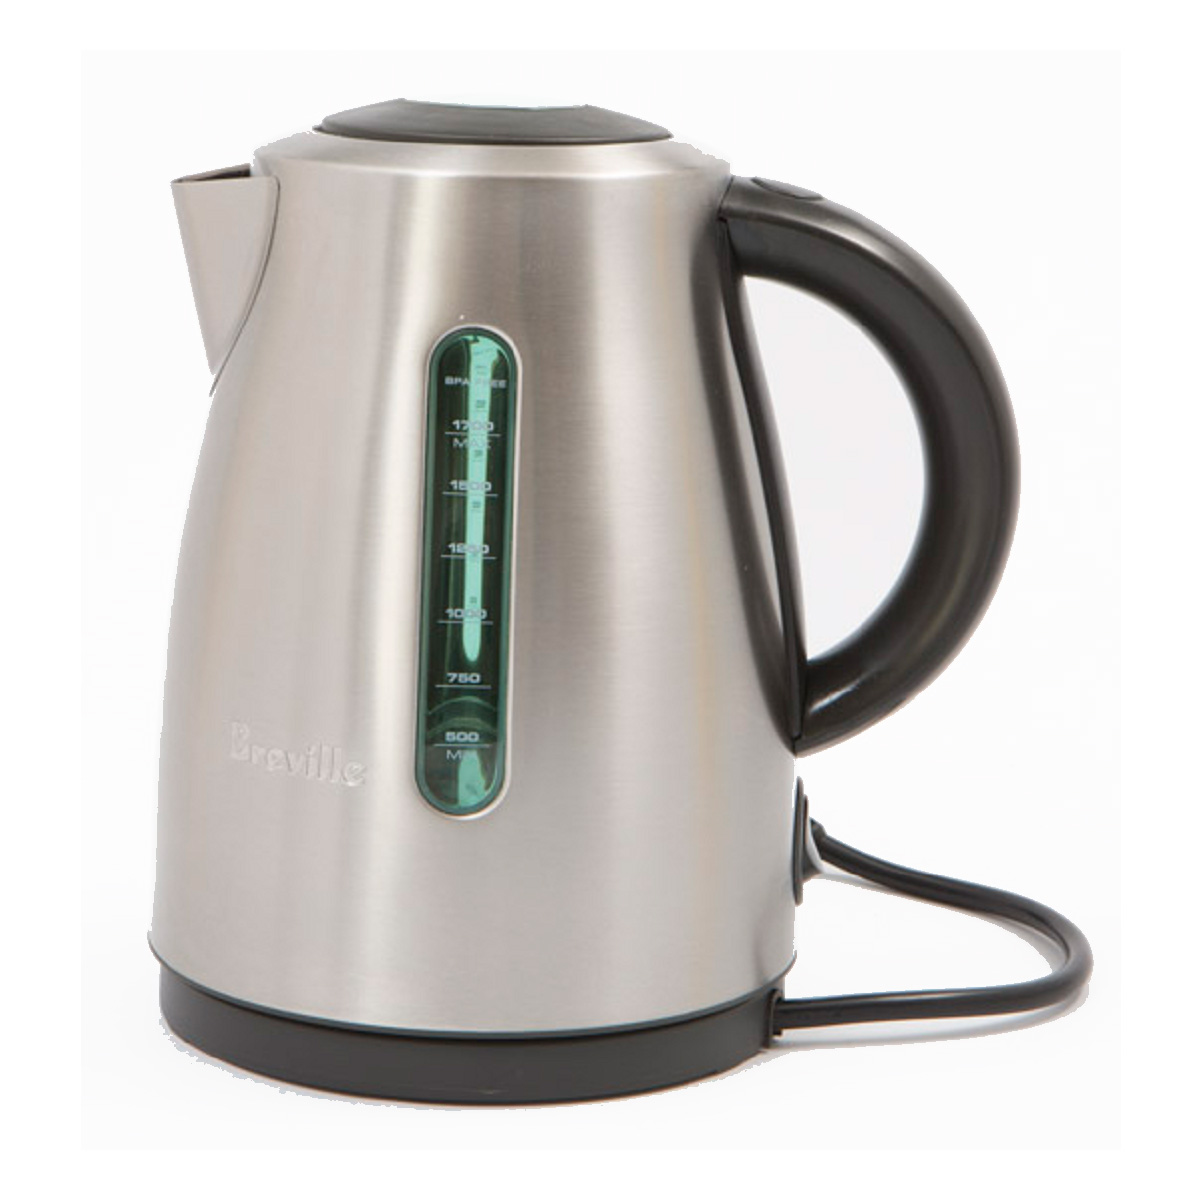 Breville 1.7L Soft Top Clear Kettle BKE495